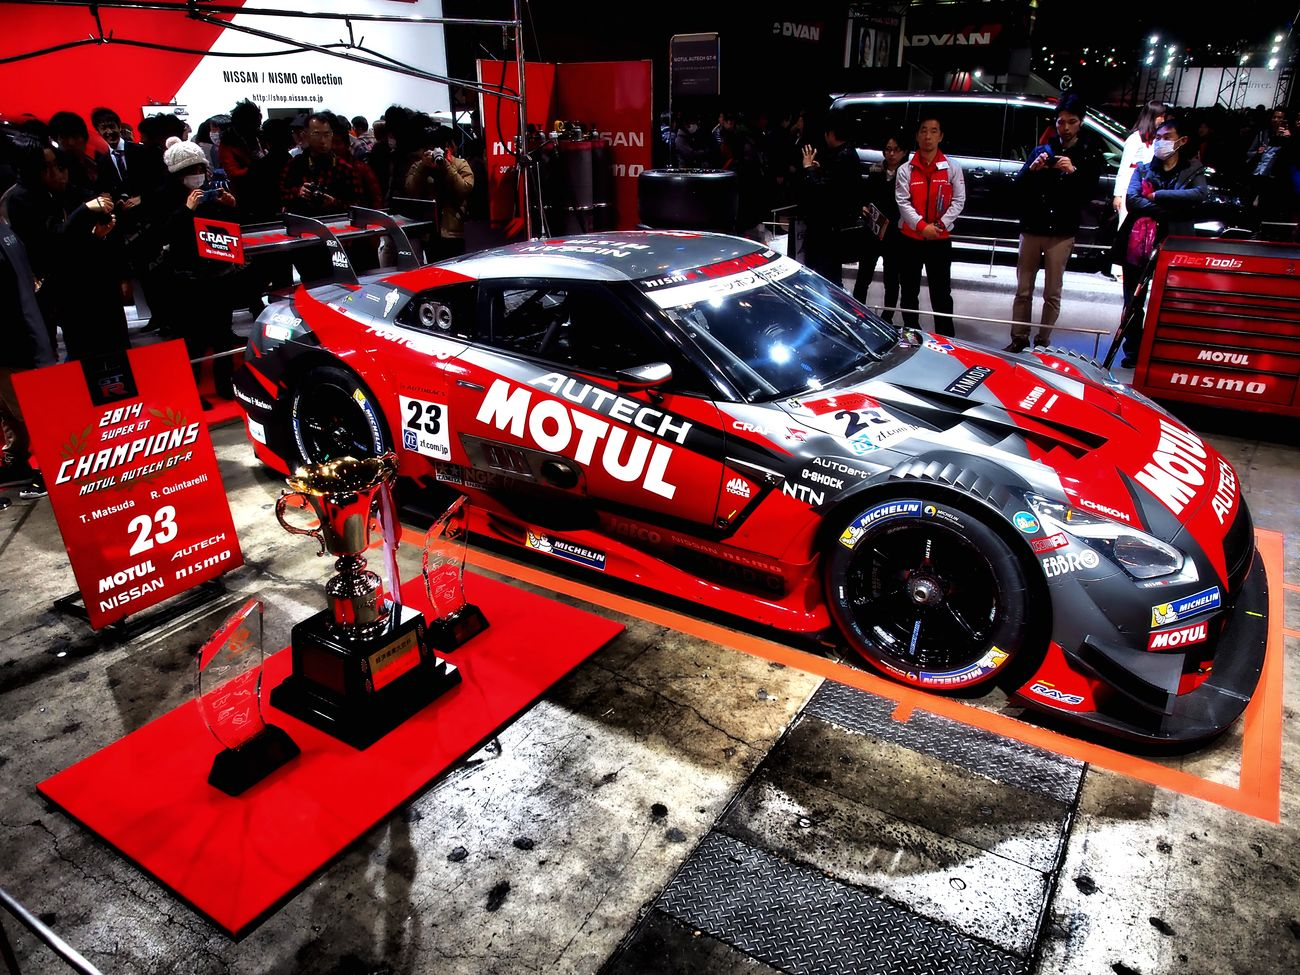 SUPER GT 2014 Champions car. Tokyo Auto Salon 2015 Super Gt Racing Car Sexy Car Car Cars CarShow Car Porn Enjoying Life 東京オートサロン 東京オートサロン2015